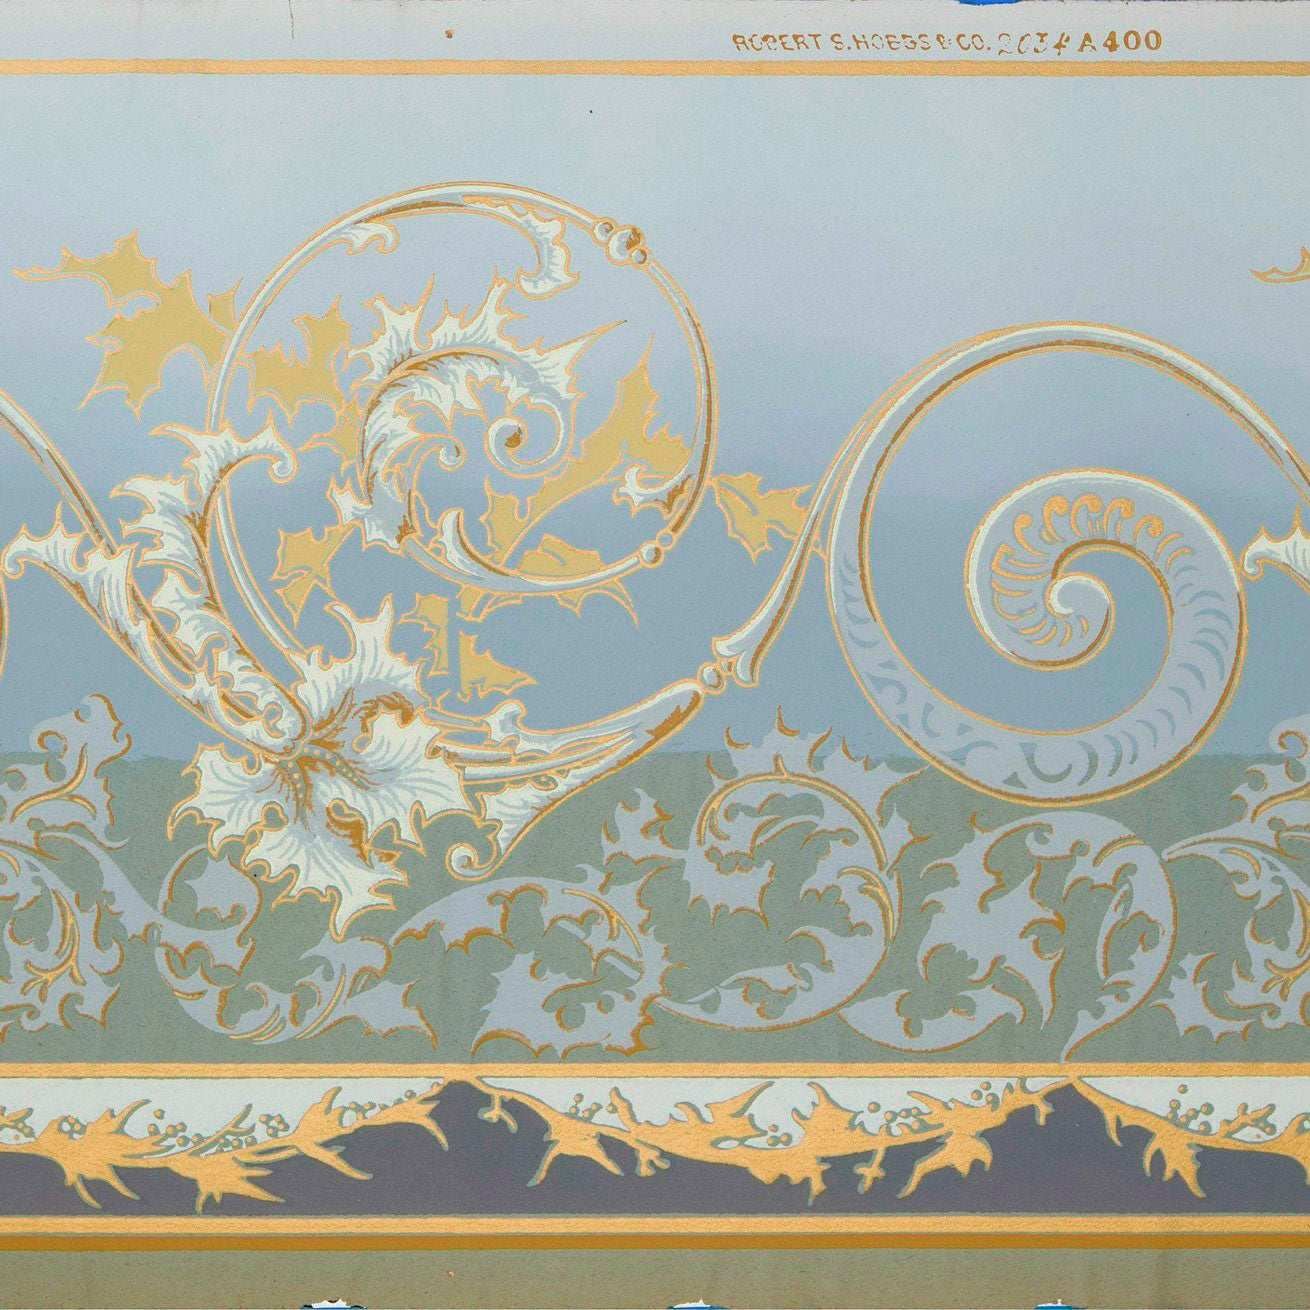 A close up of this fabulous wallpaper, used as palette inspiration for this floorcloth. By Robert S. Hobbs & Co, c.1880.